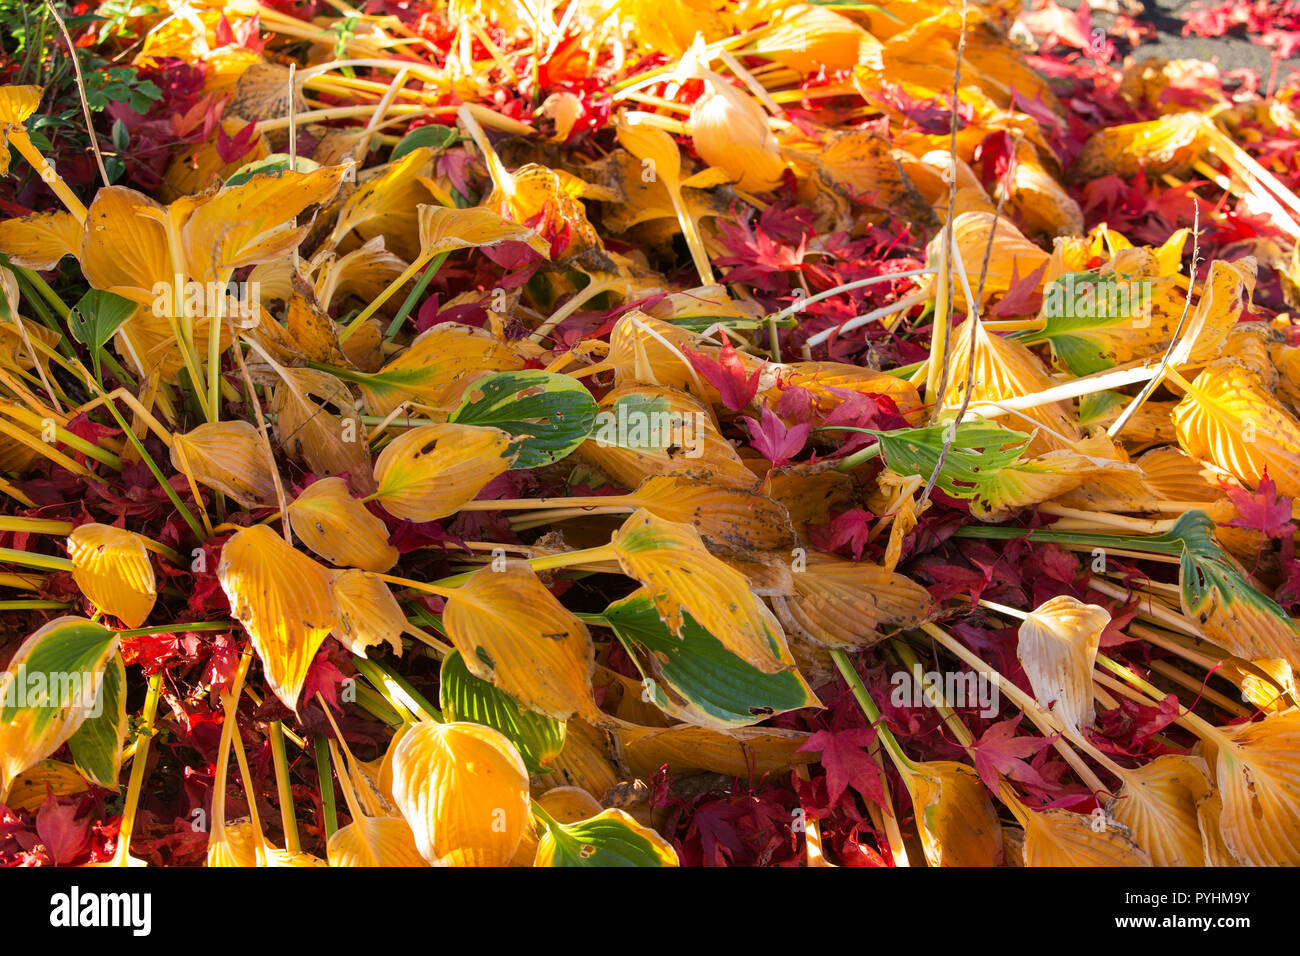 Acer Leaves On Hosta Plants In Autumn Stock Photo 223509271 Alamy